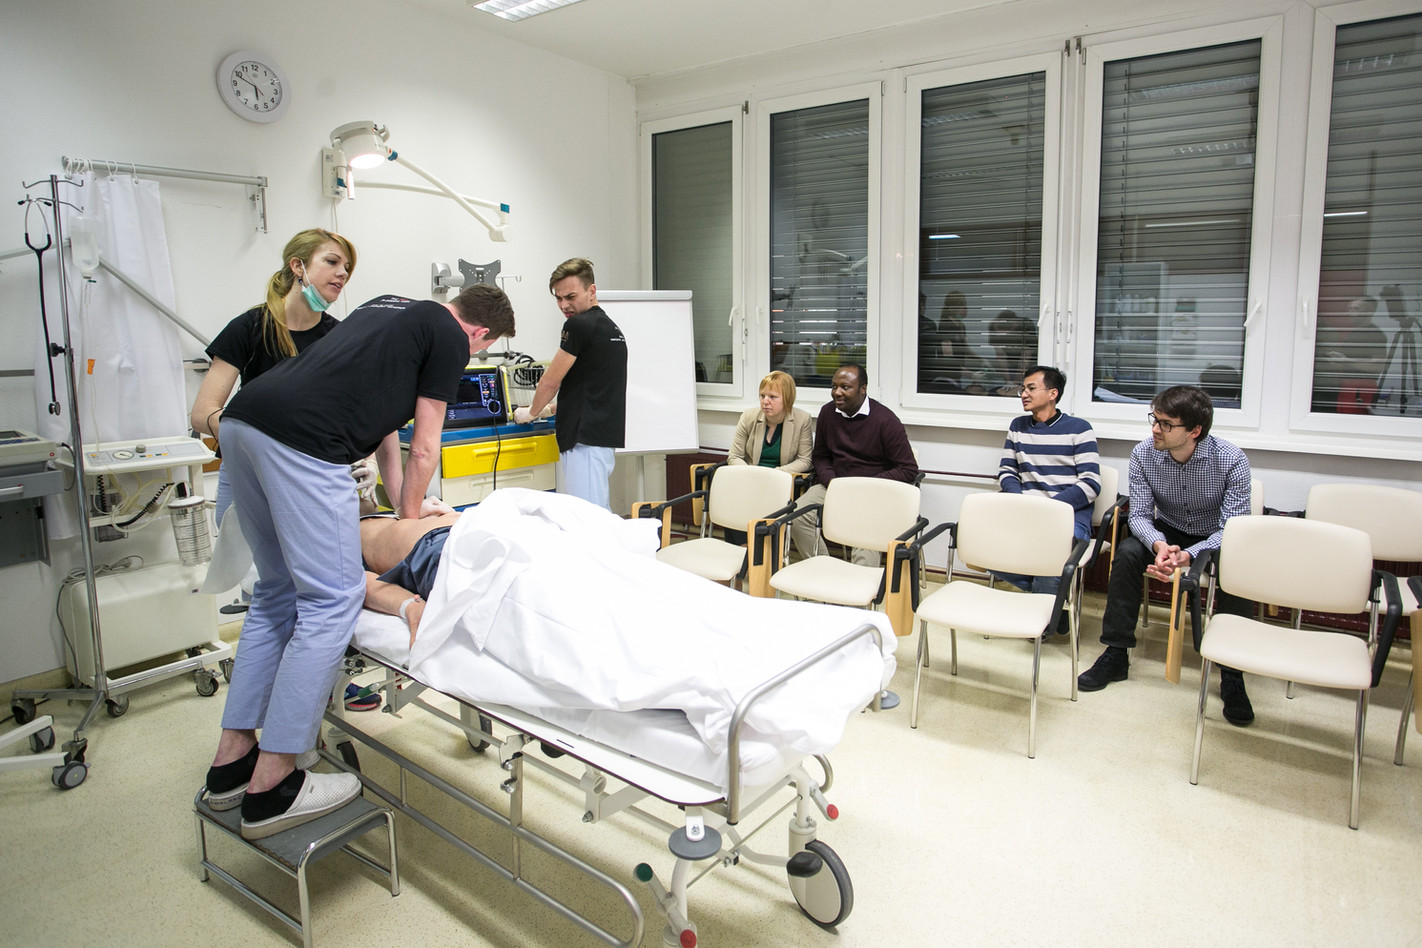 Visit of the SIM (simulation) Center: Implementing advanced simulations in healthcare with modern equipment